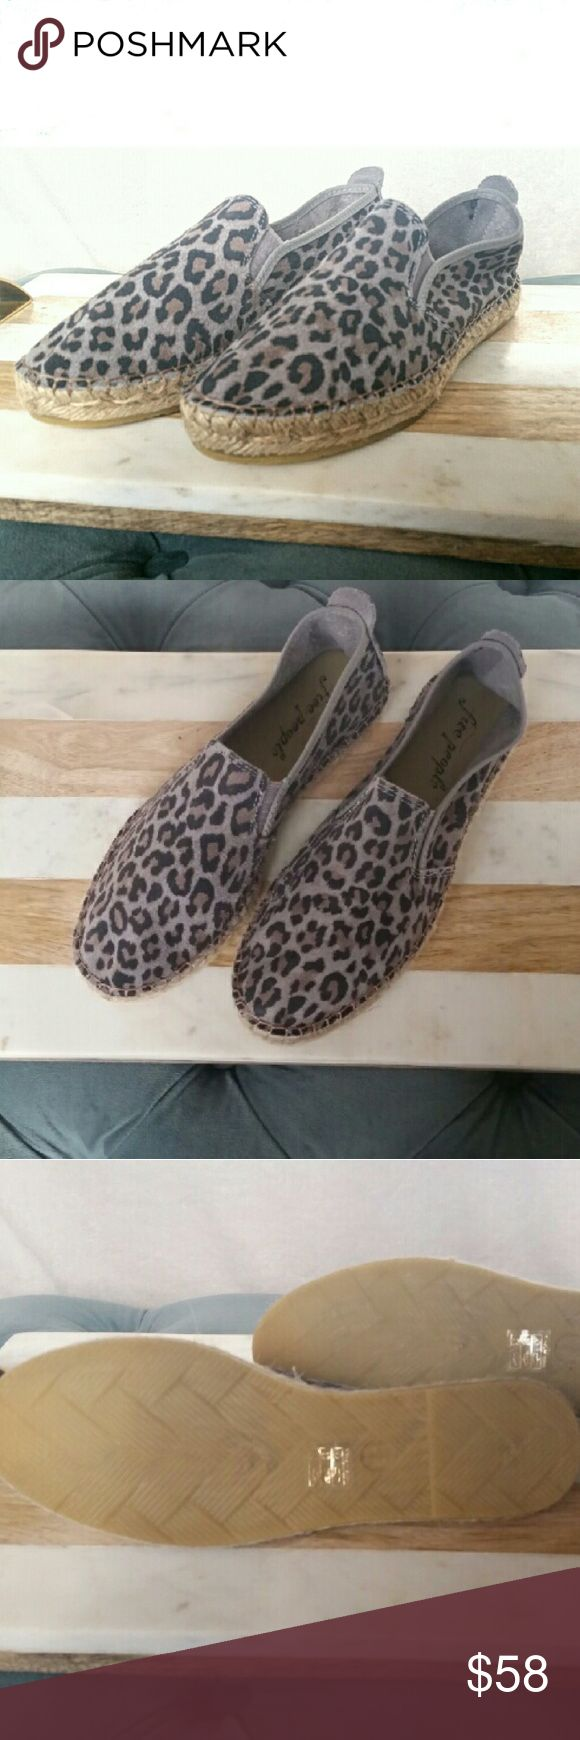 NEW Free People Suede Animal Print Espadrille Shoe New Without Tag or Box Free People Espadrille Suede Leather Animal Print Espadrille Flats in size 38 Runs a little small Free People Shoes Espadrilles